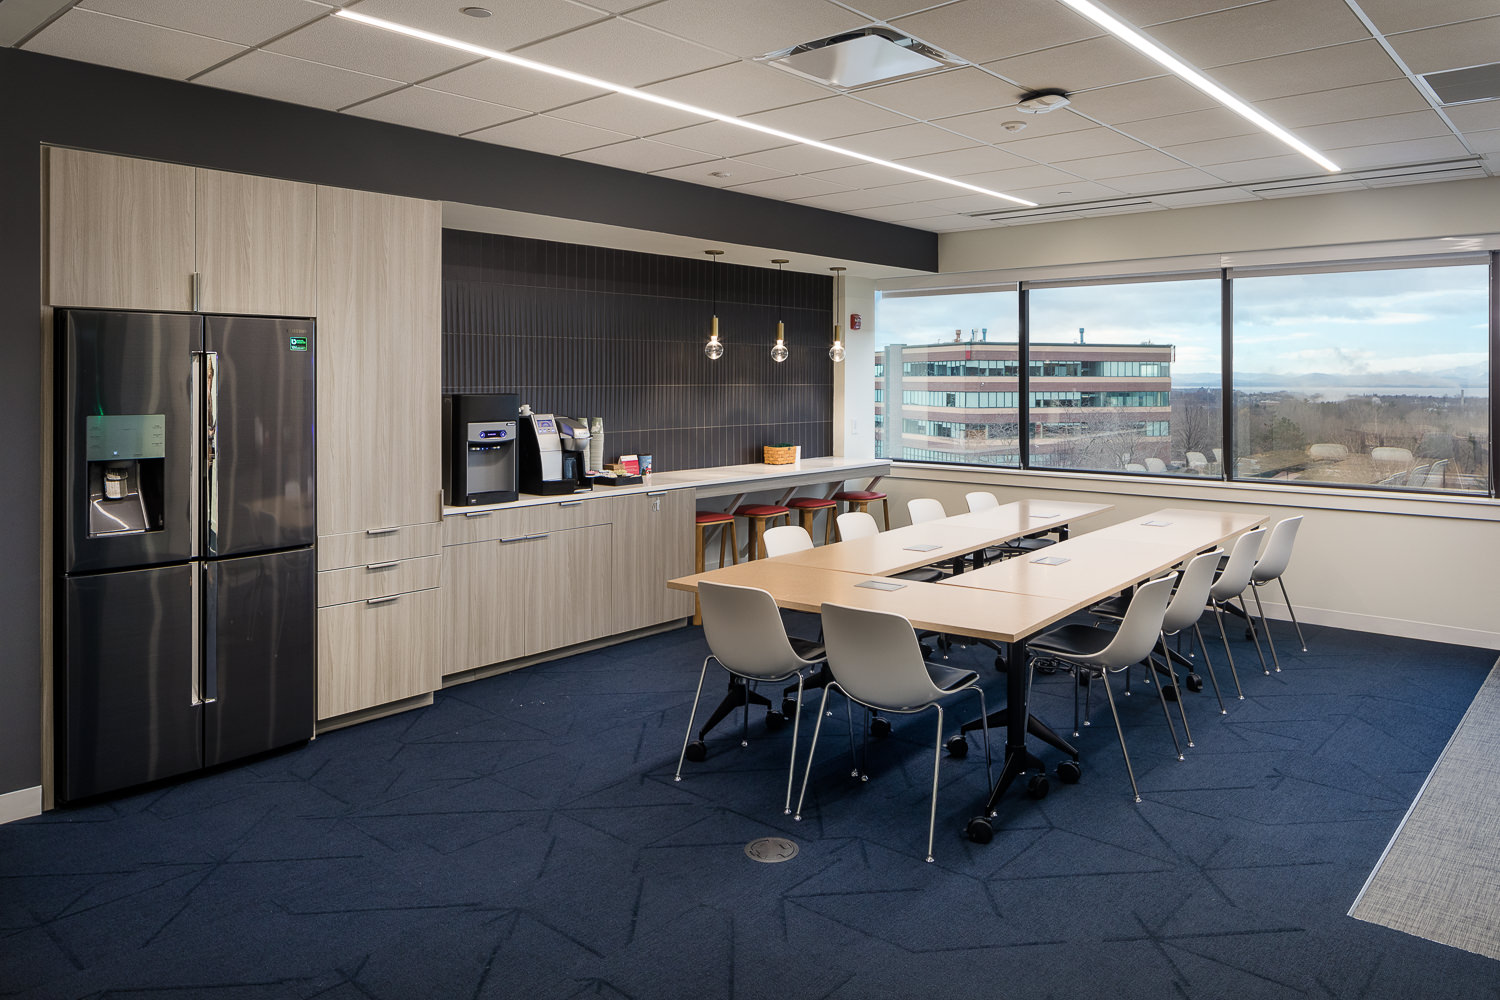 A modern version of a break room includes bar seating, globe pendant lights, and slate-colored vertical wall tiles in a recent renovation of a corporate office space.